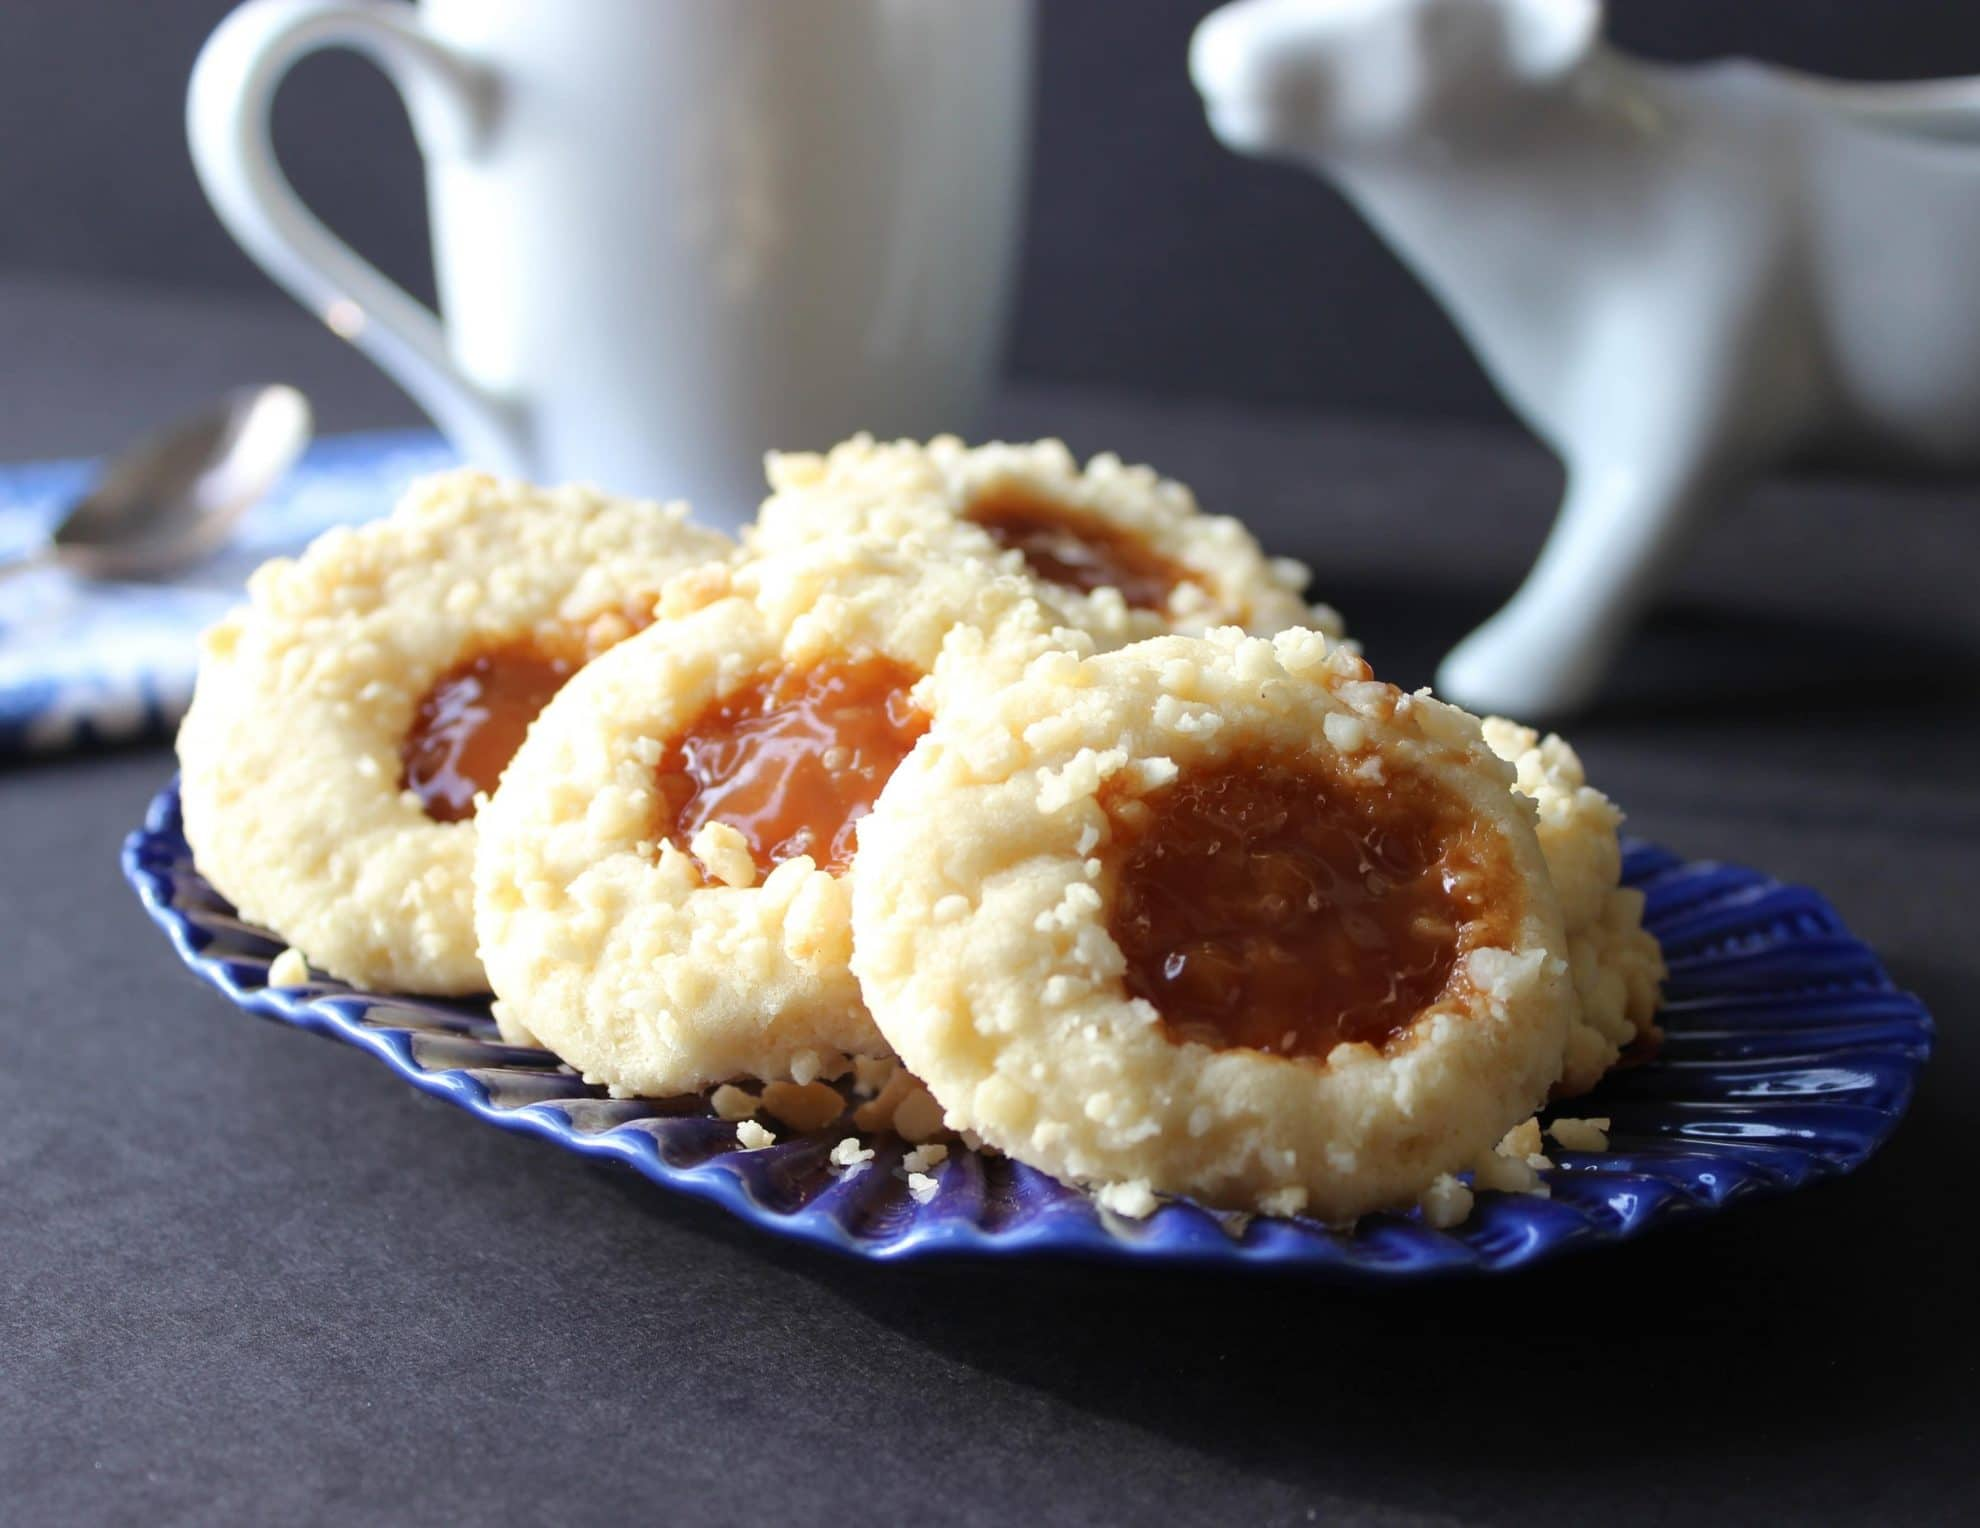 The Twelve Days of Cookies – Macadamia Butter and Caramel Thumbprint Cookies